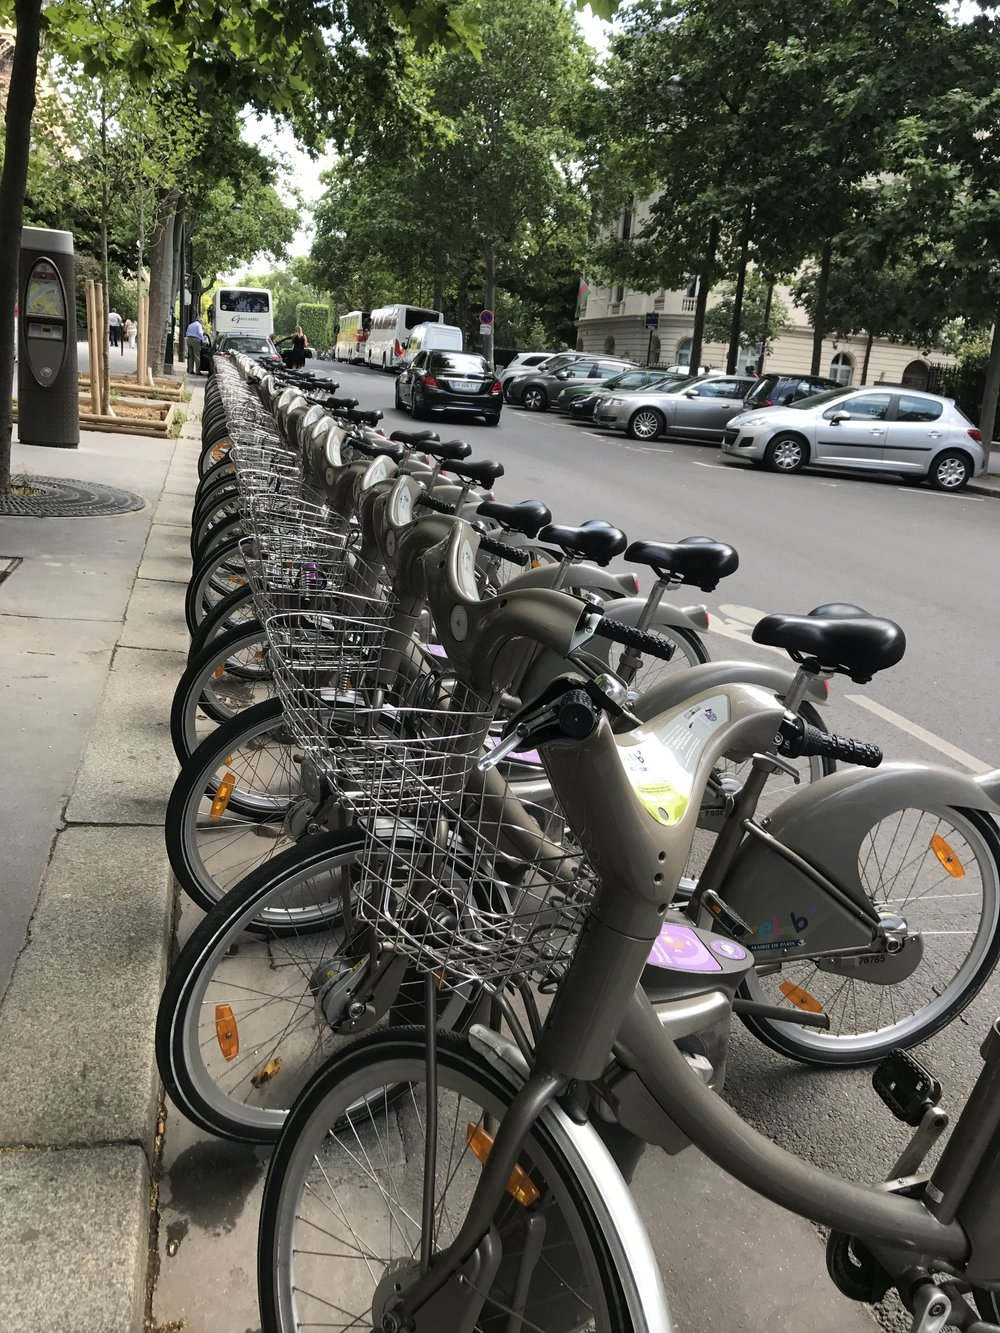 Velib Bike Share in Paris. Look at those baskets!